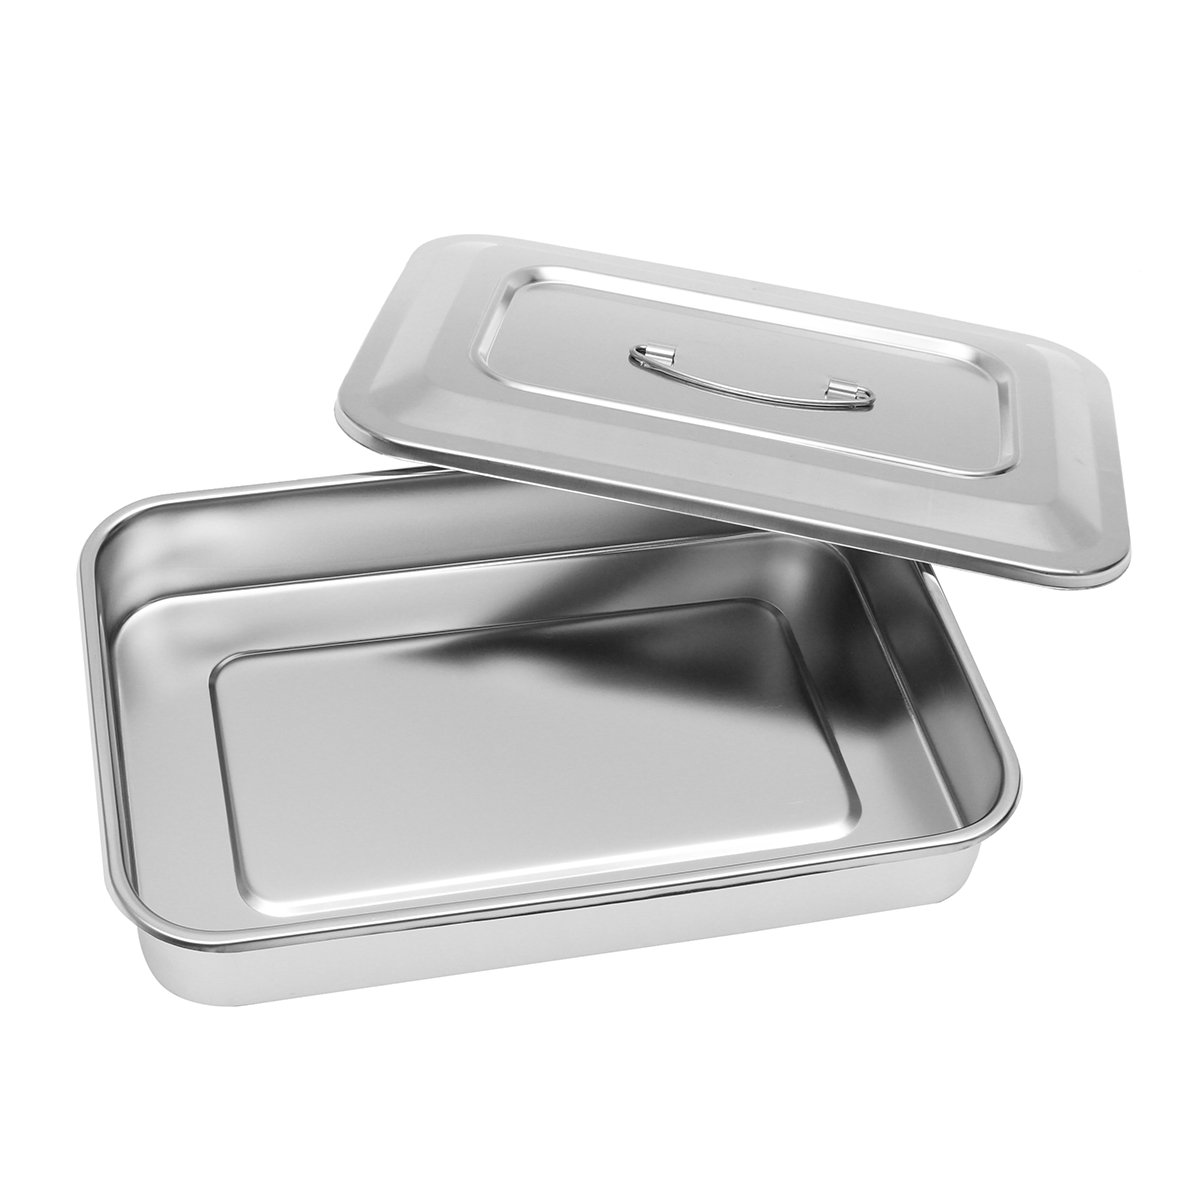 Stainless Steel Instrument Tray Organizer Holder with Lid & Handle Grip 12''x8''x2''